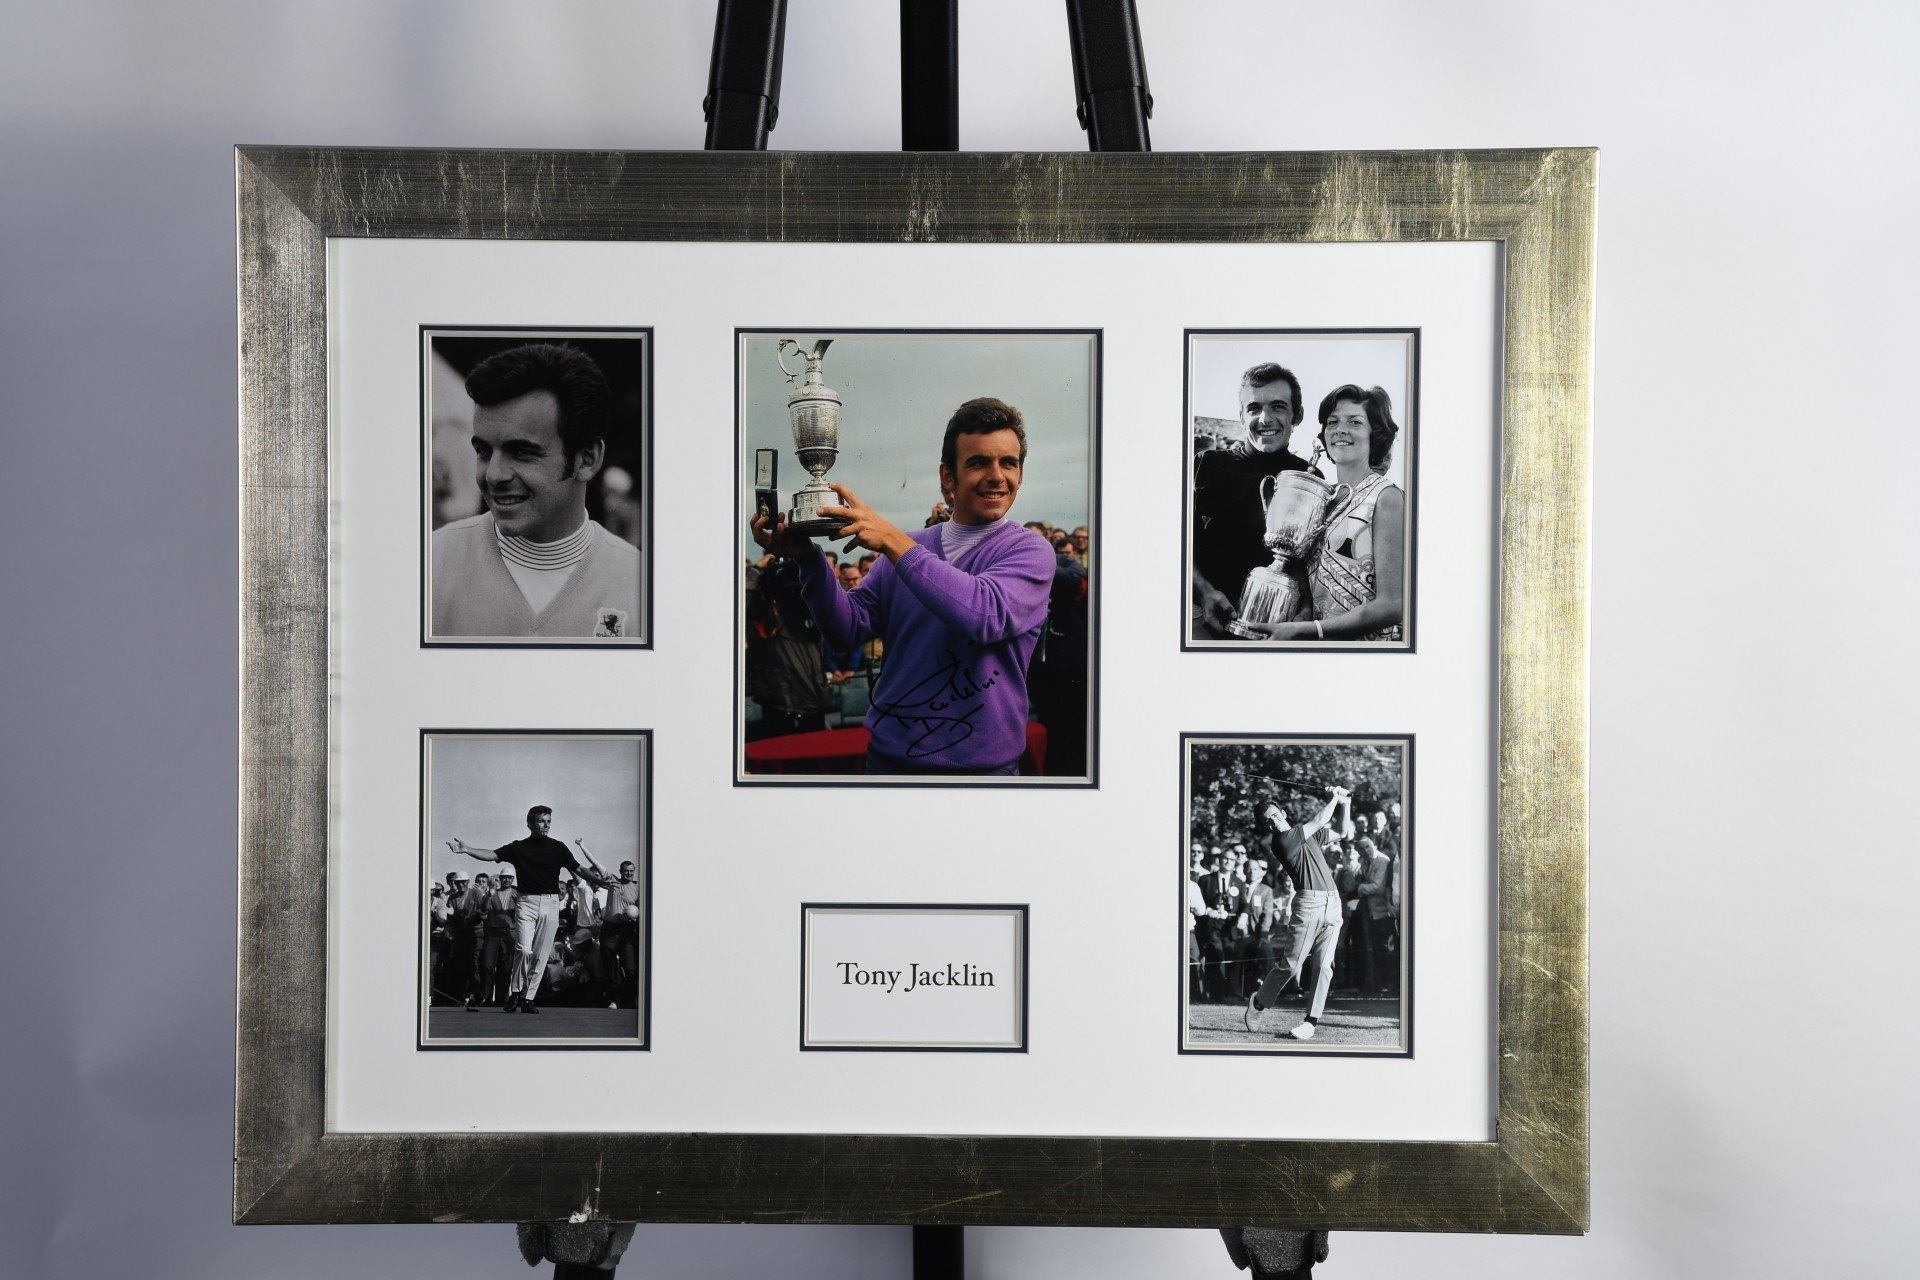 Tony Jacklin Framed Signed Photograph